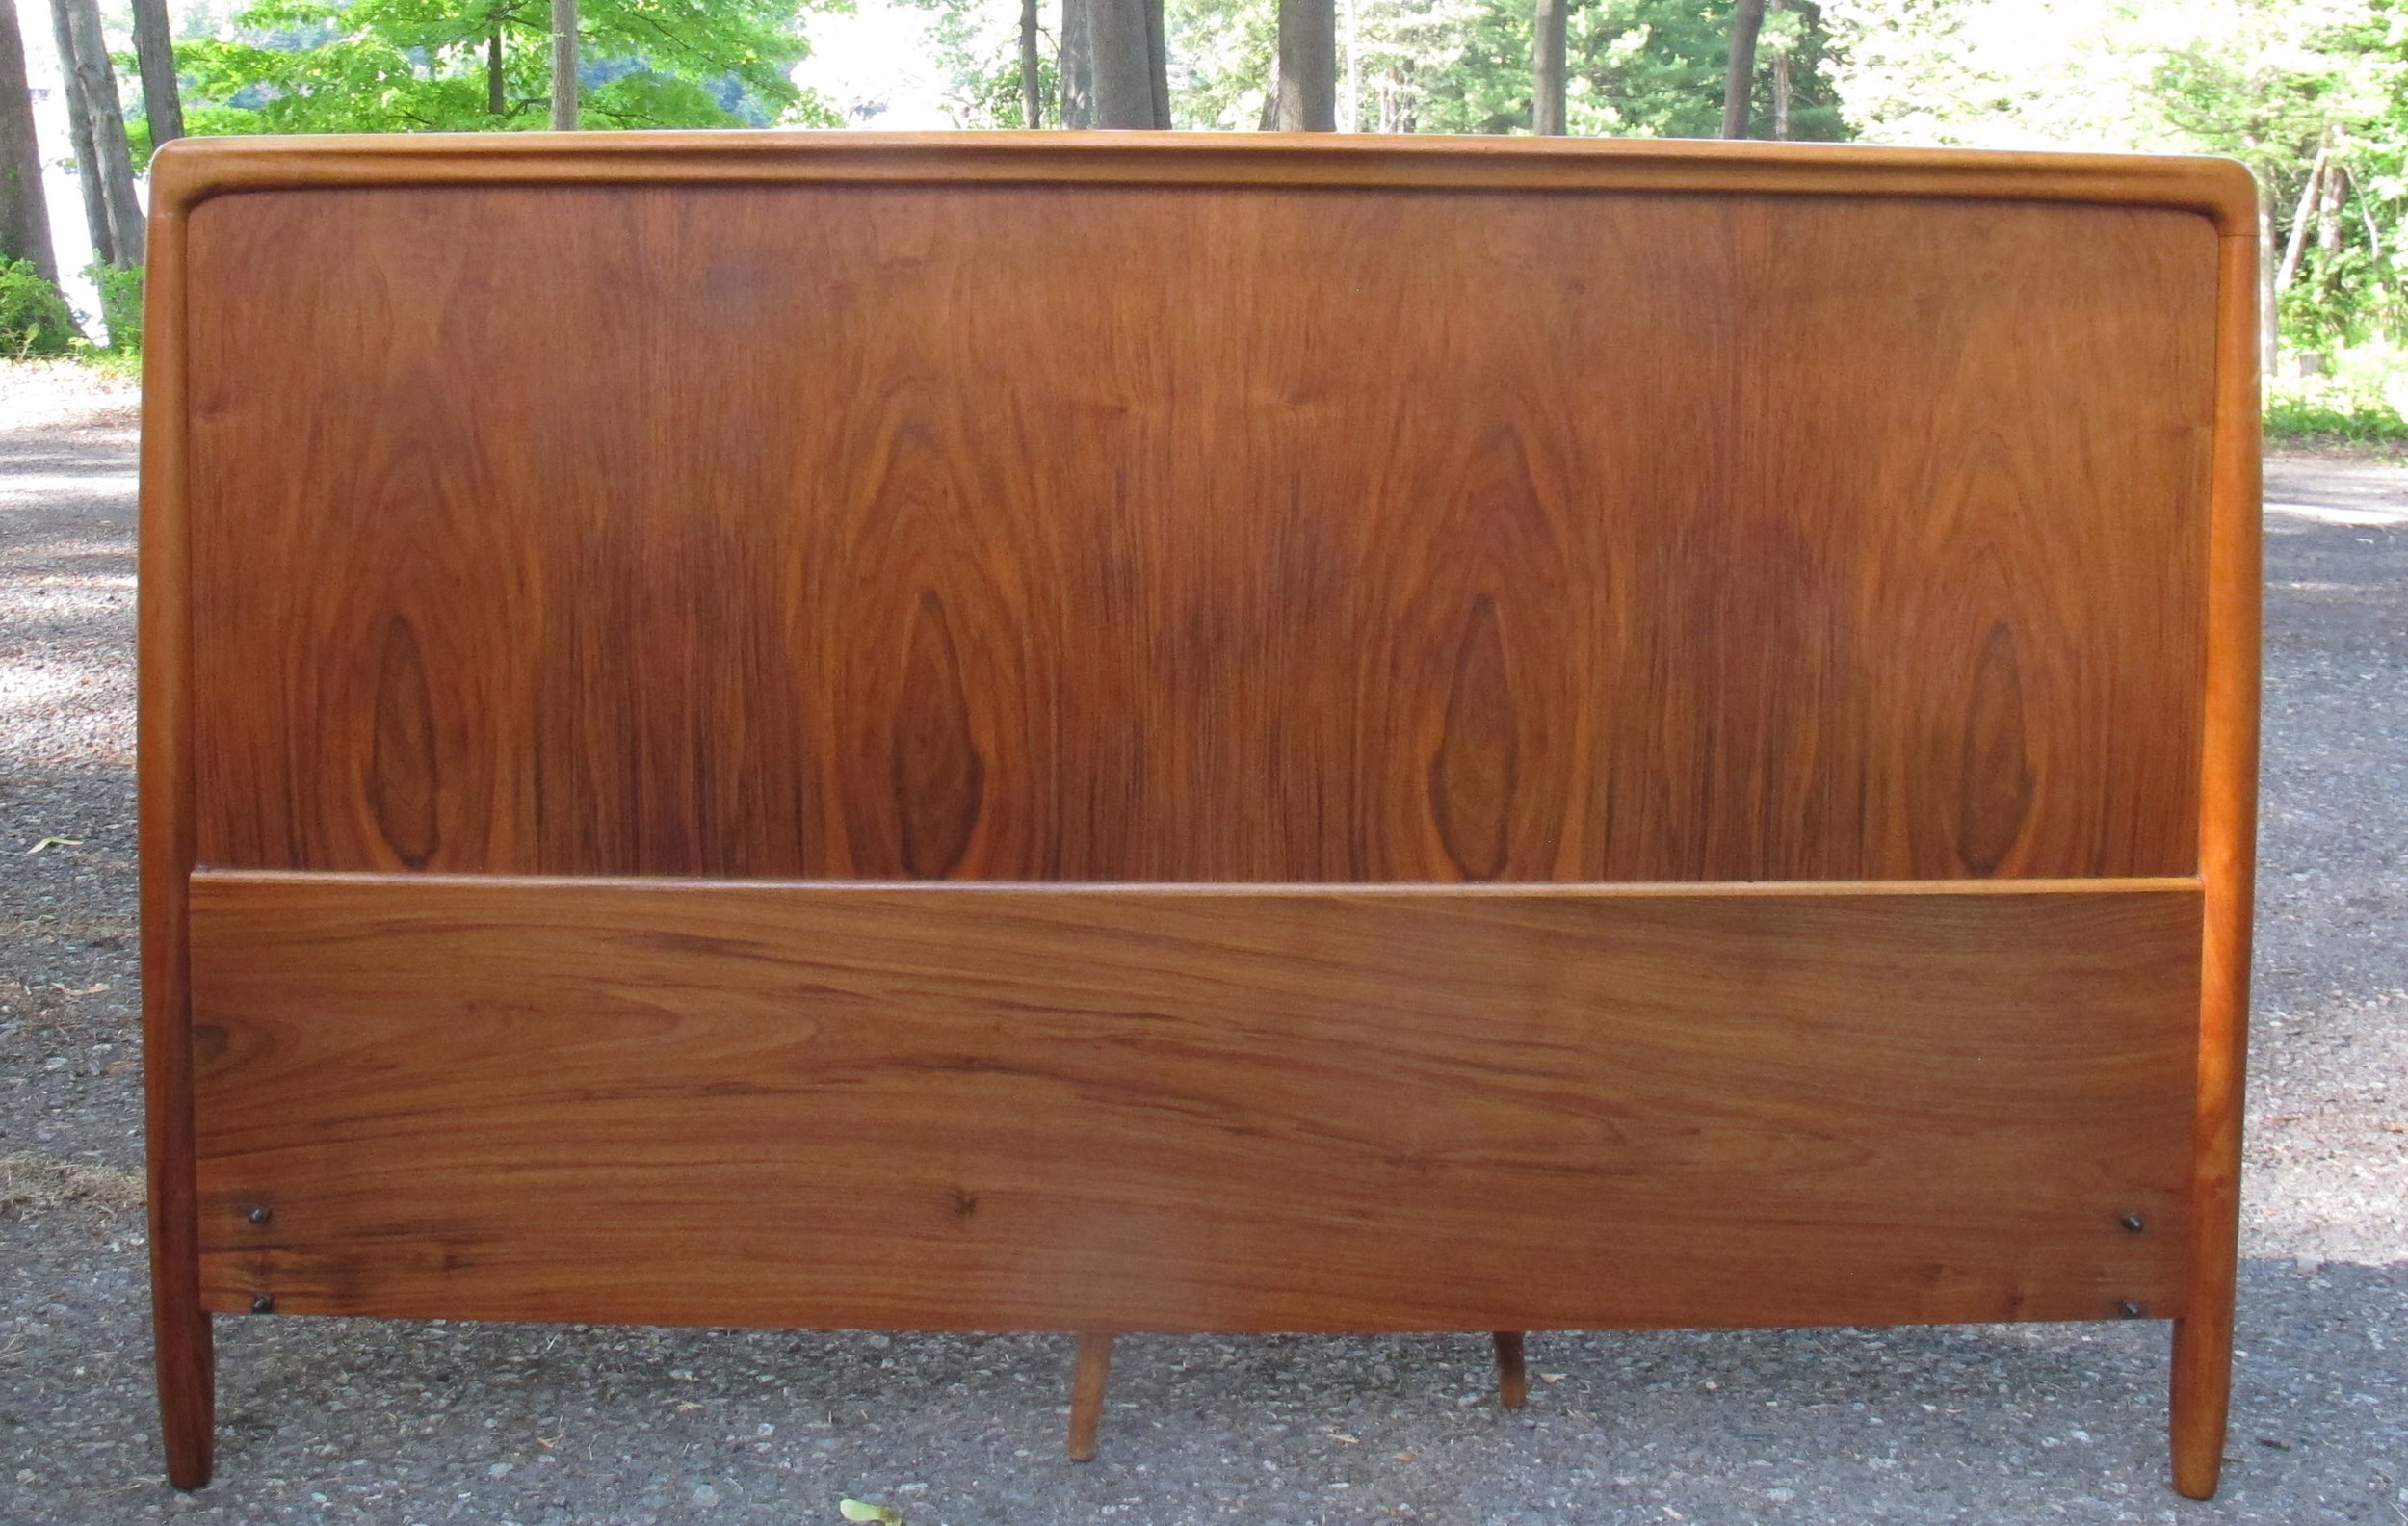 DANISH MODERN FULL SIZE TEAK HEADBOARD